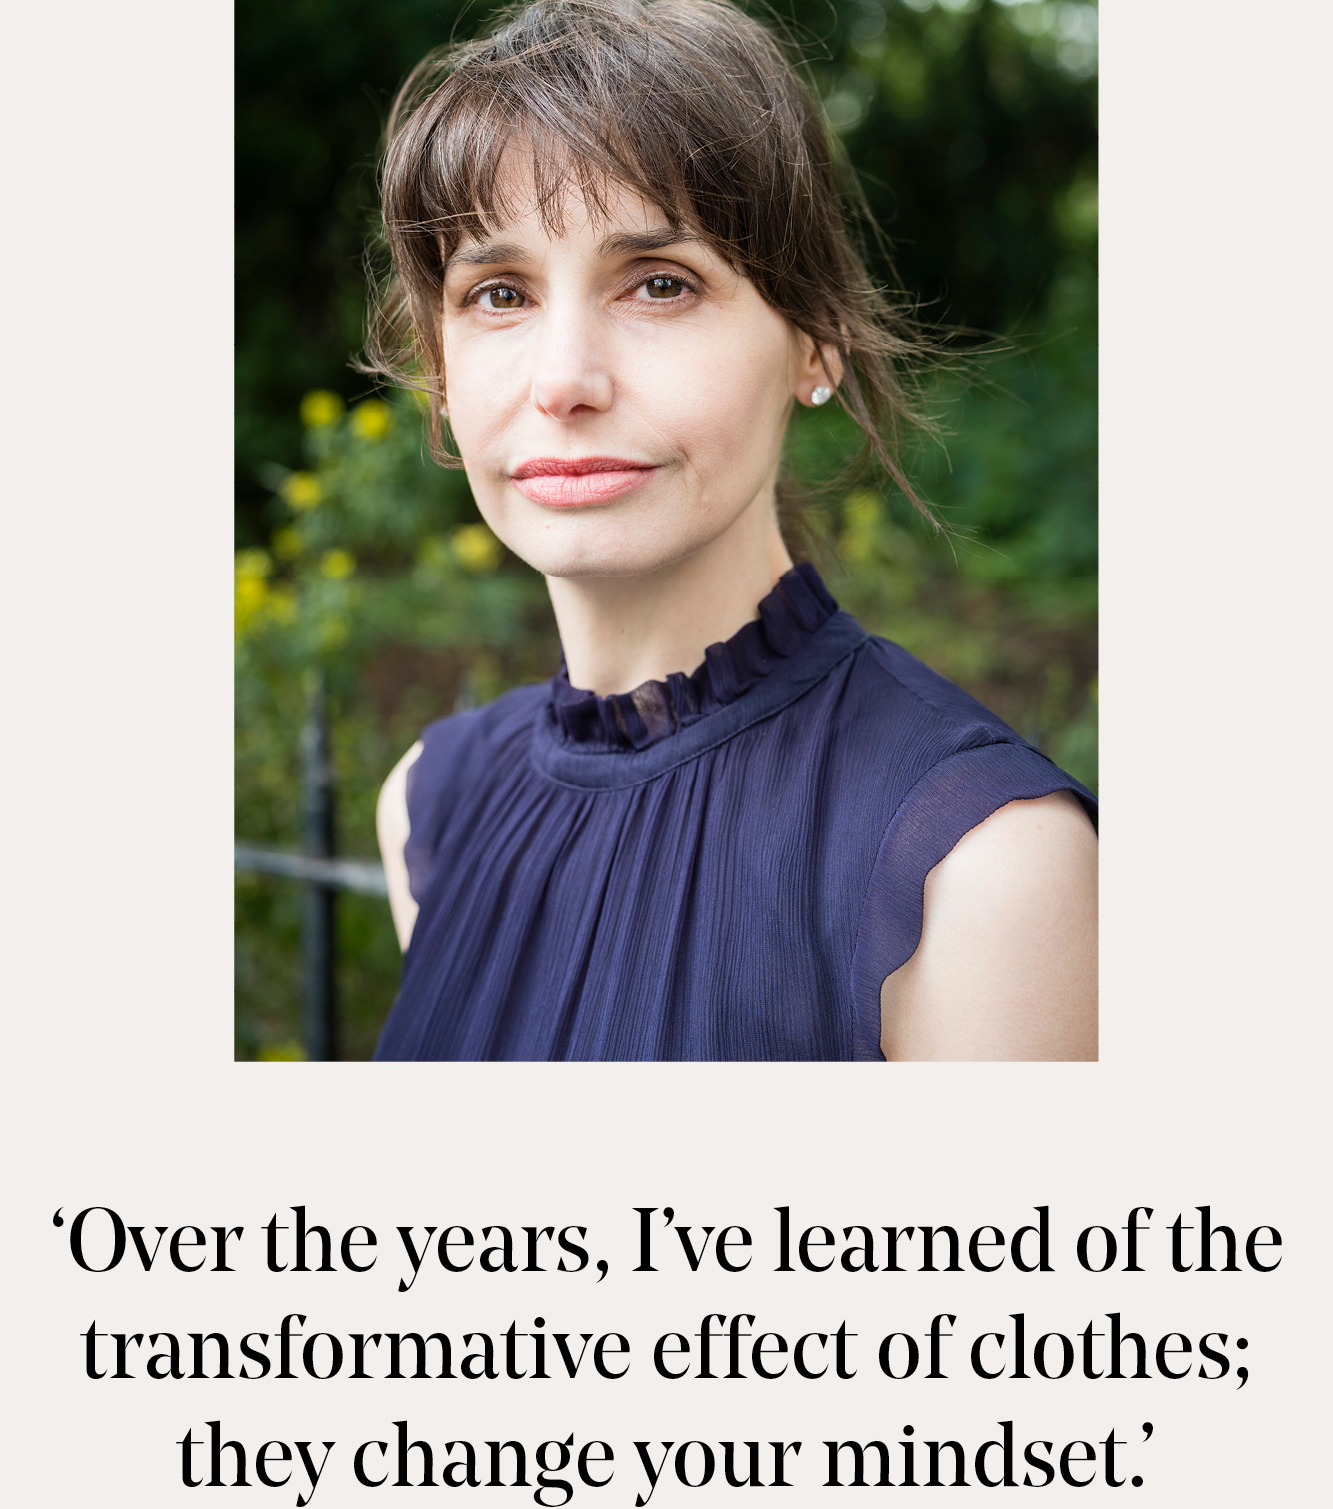 Quotes: Over the years, I've learned of the transformative effect of clothes; they change your mindset.